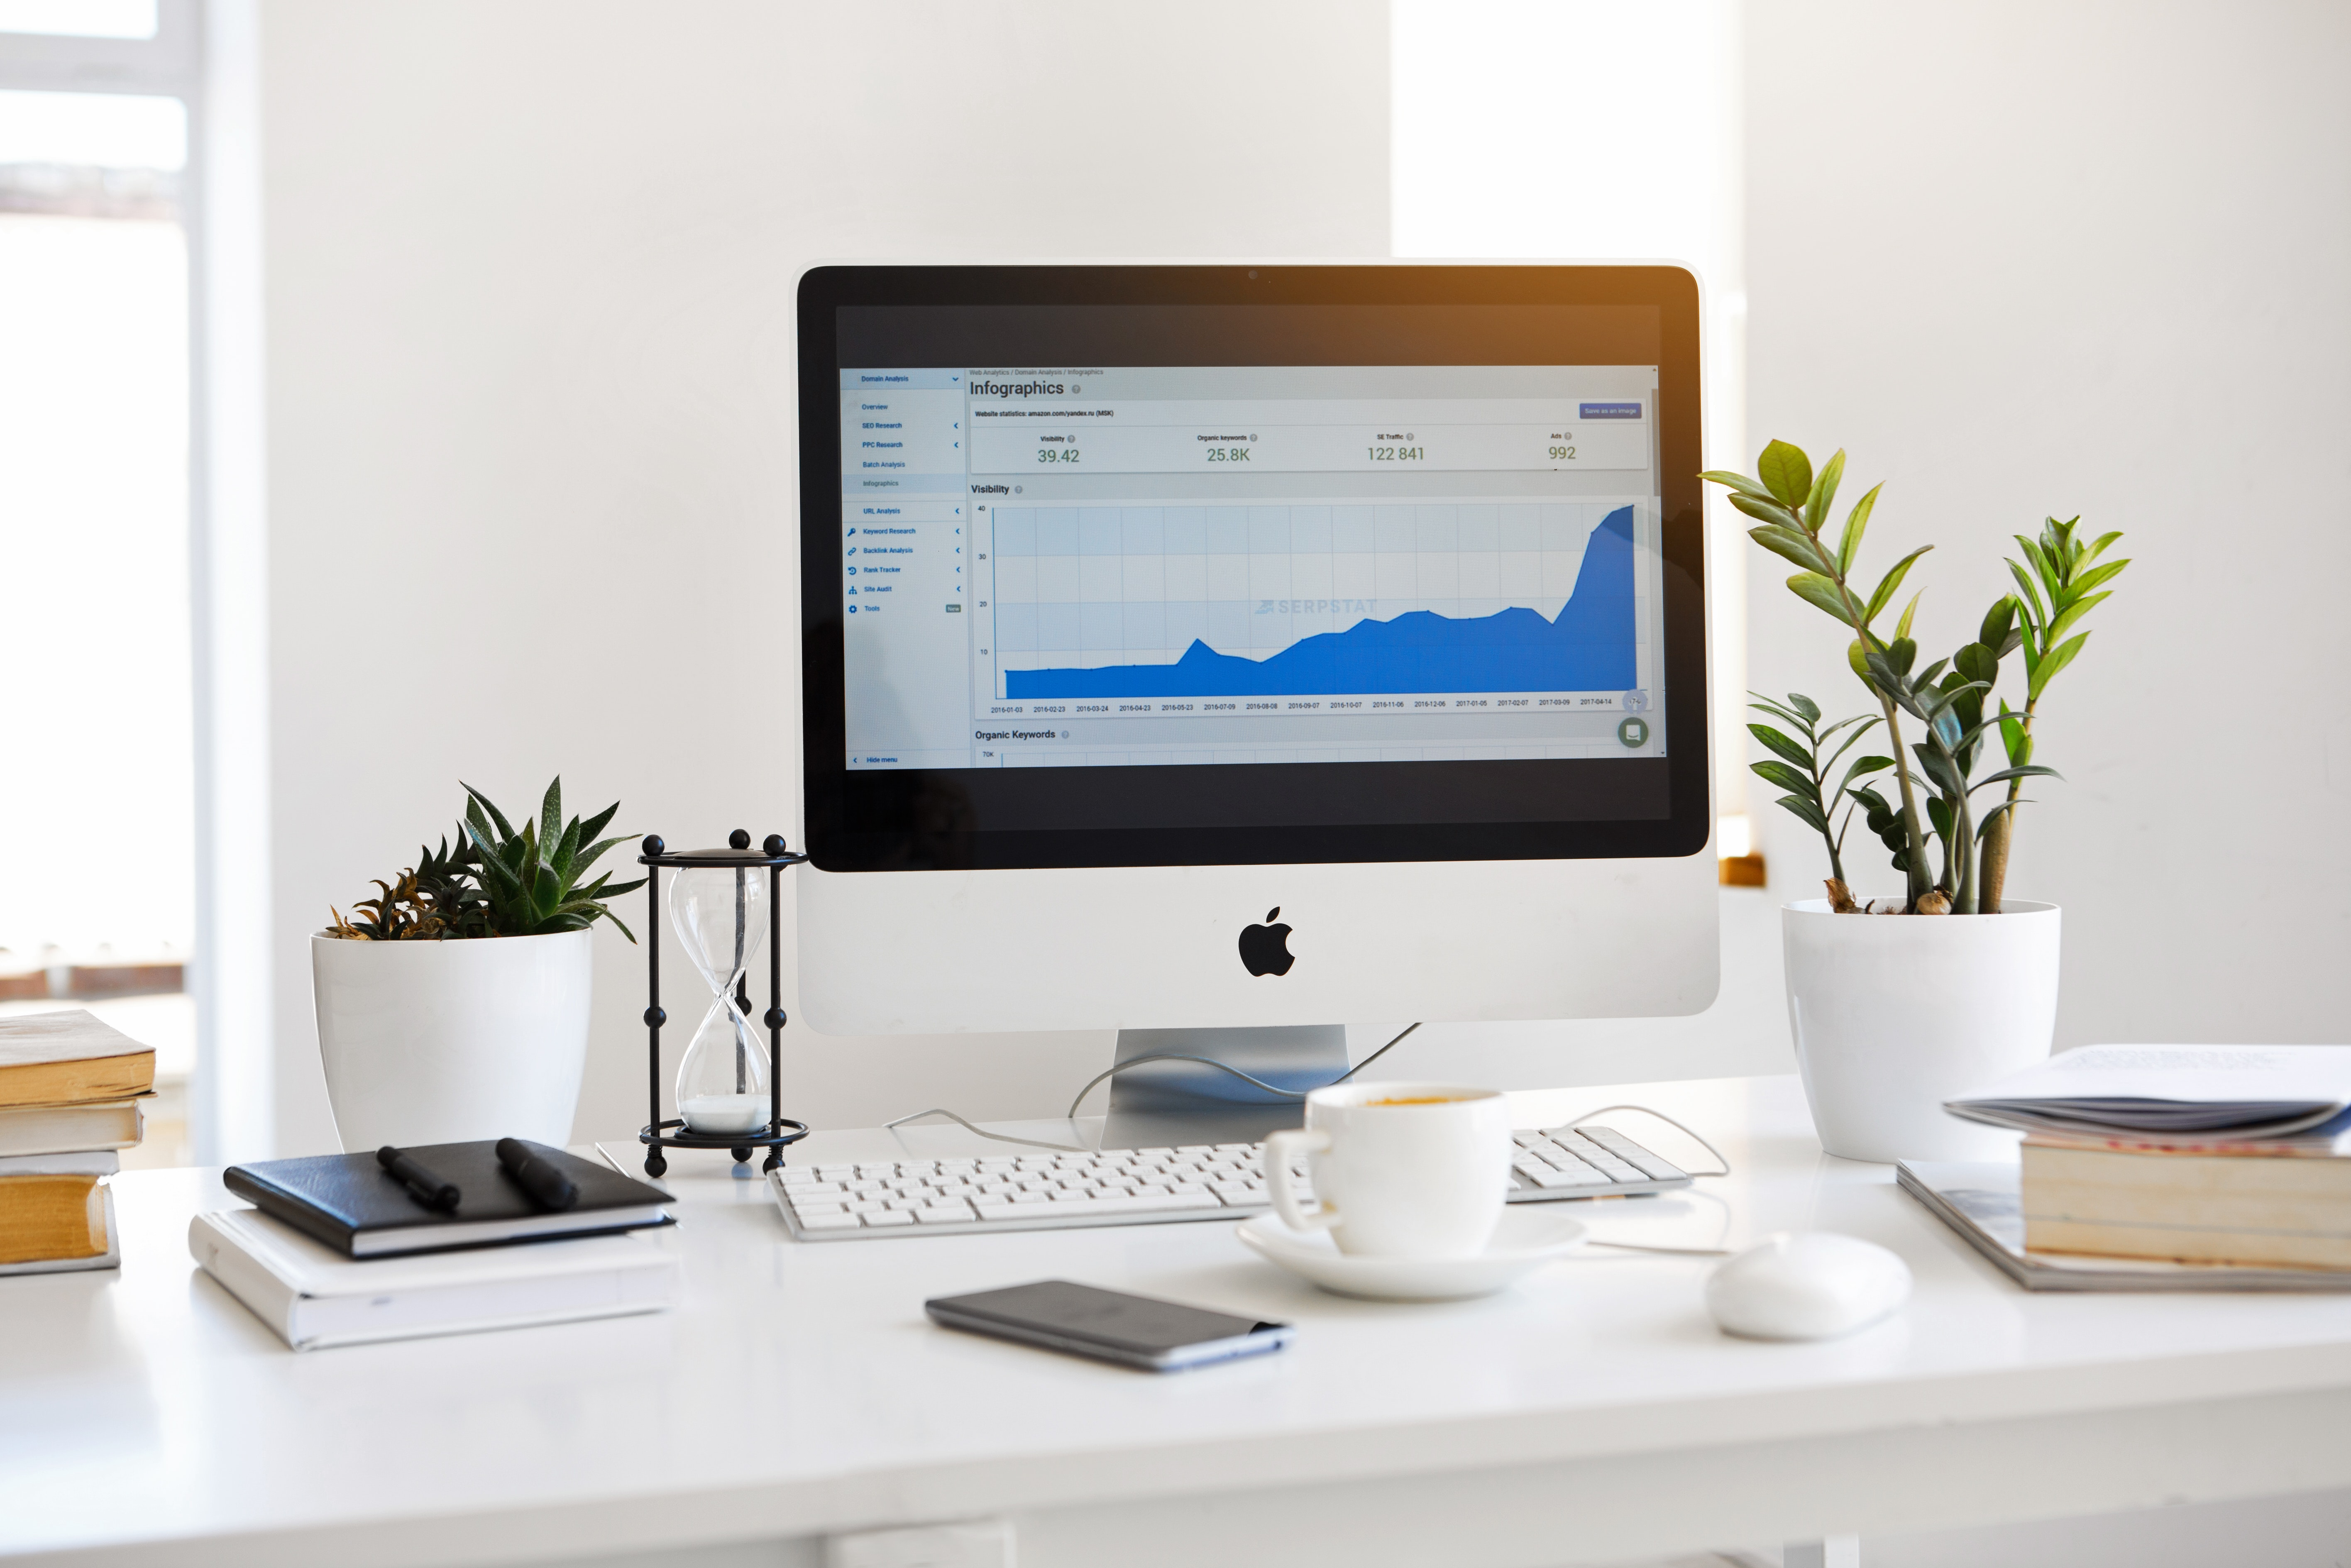 desktop computer displaying google analytics on a white table next to a plant